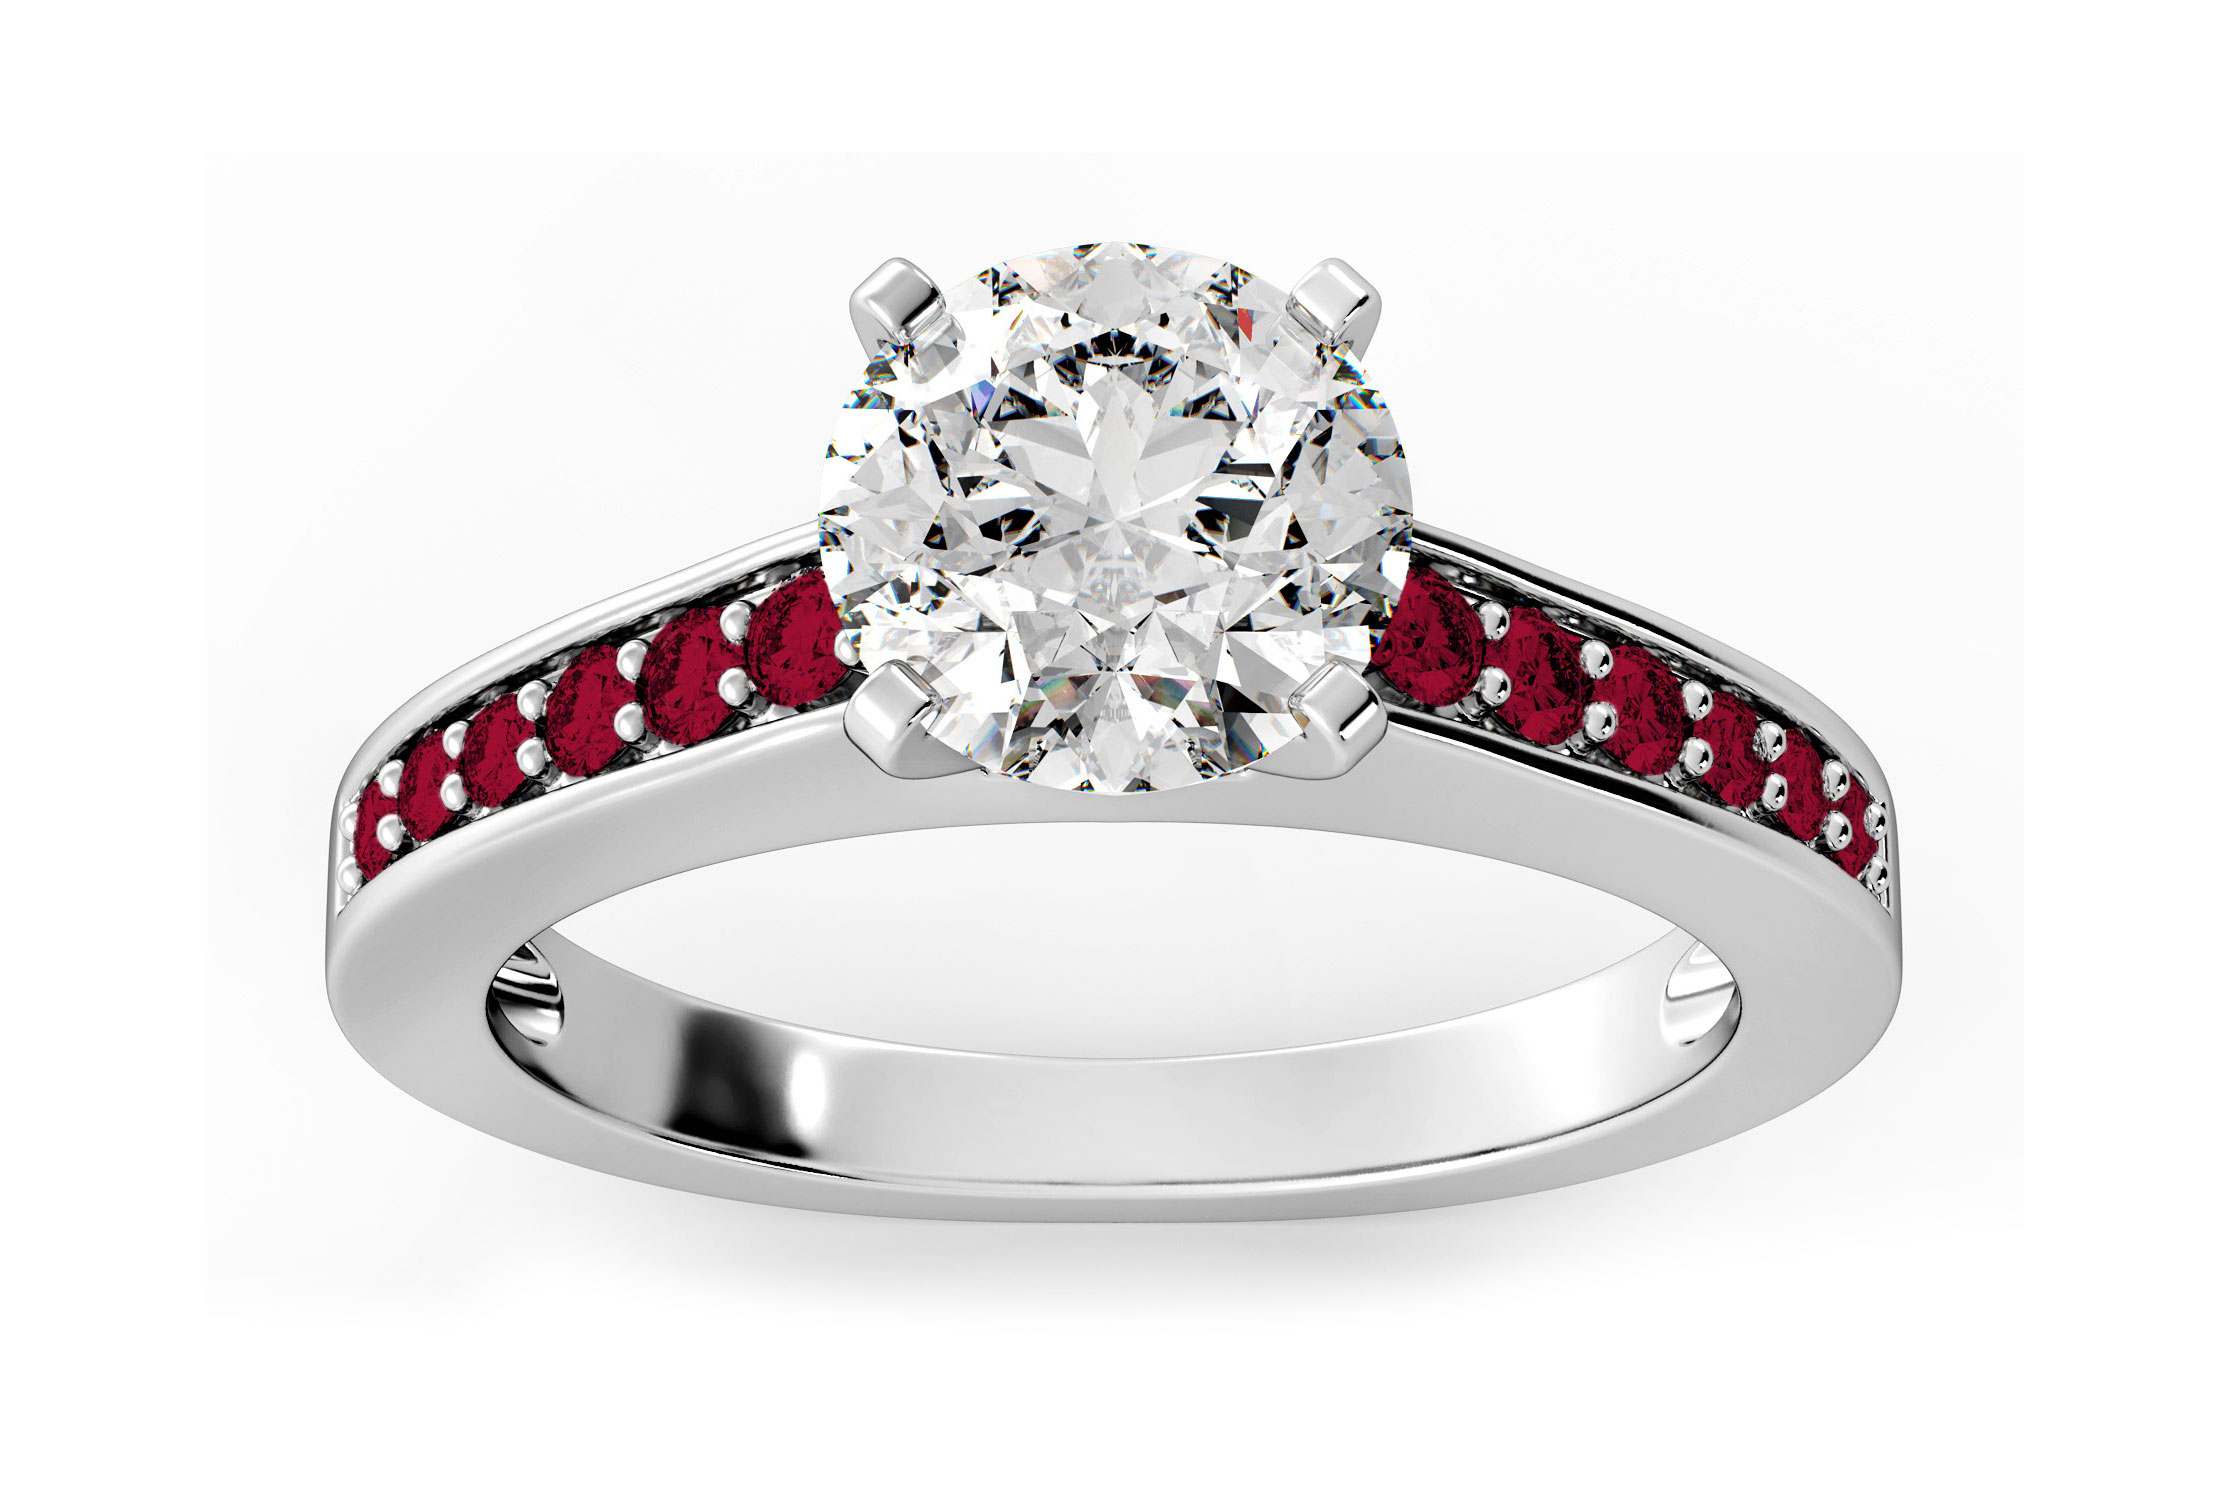 rubies ring wiki tone lovetoknow band two diamond rings multiple with photos engagement